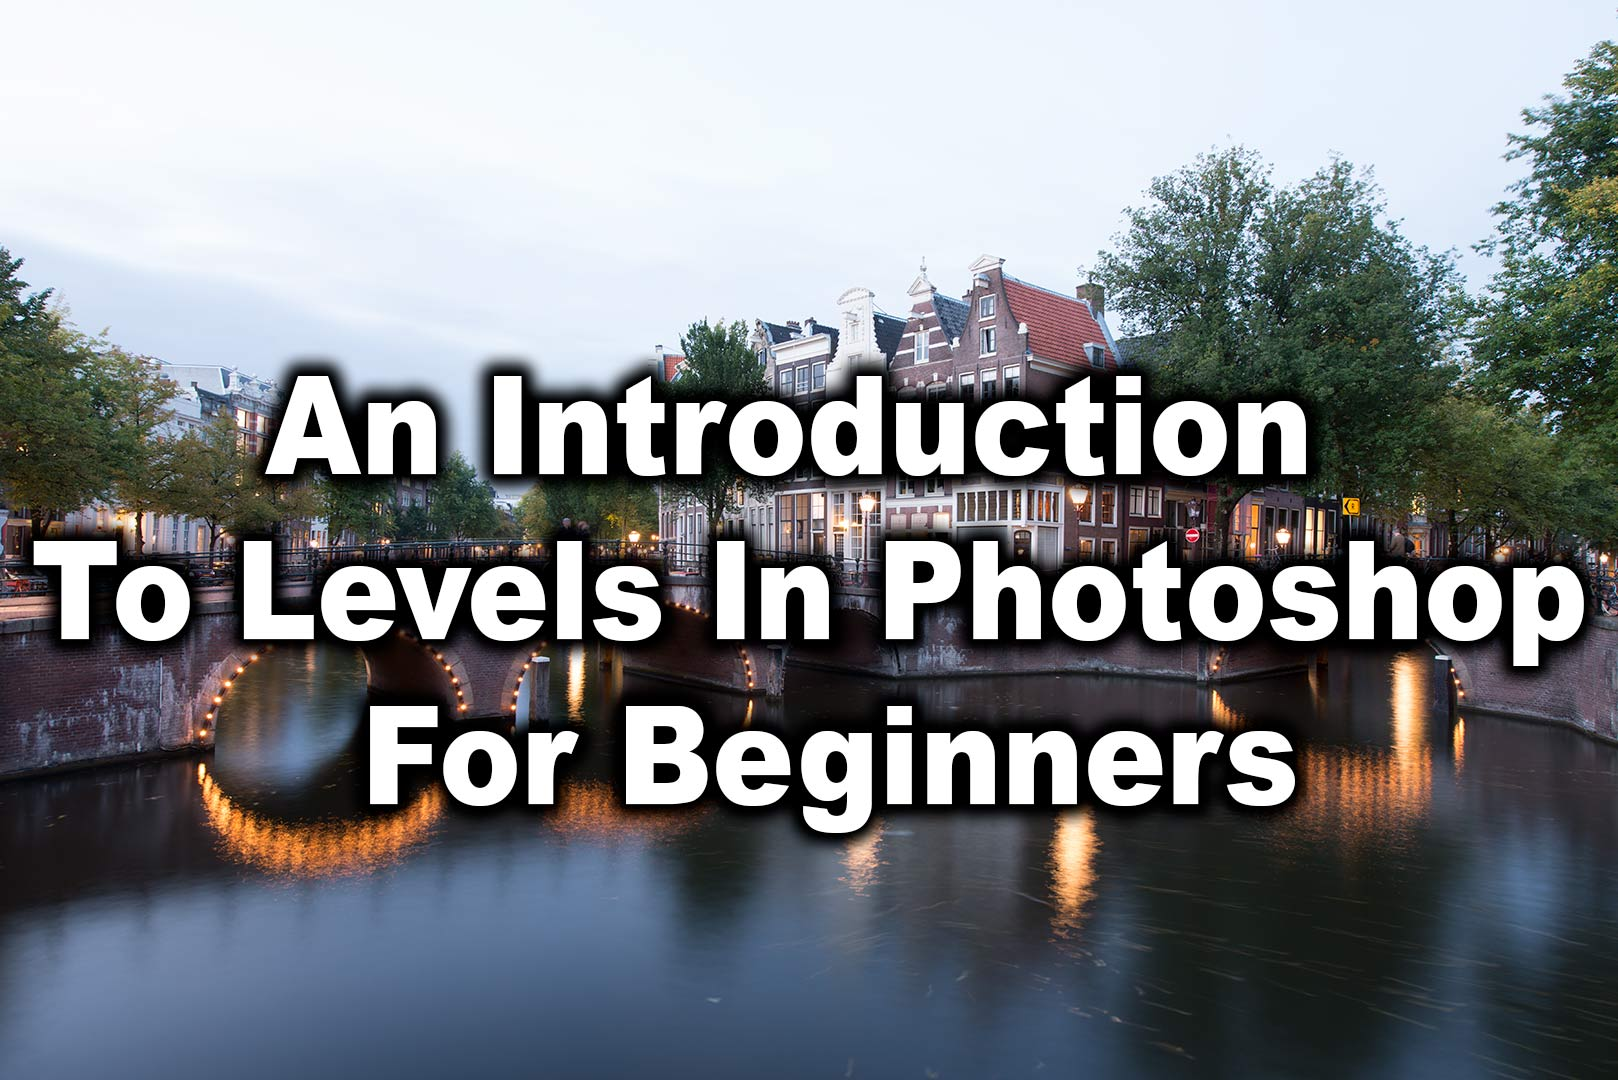 An Introduction To Levels In Photoshop For Beginners